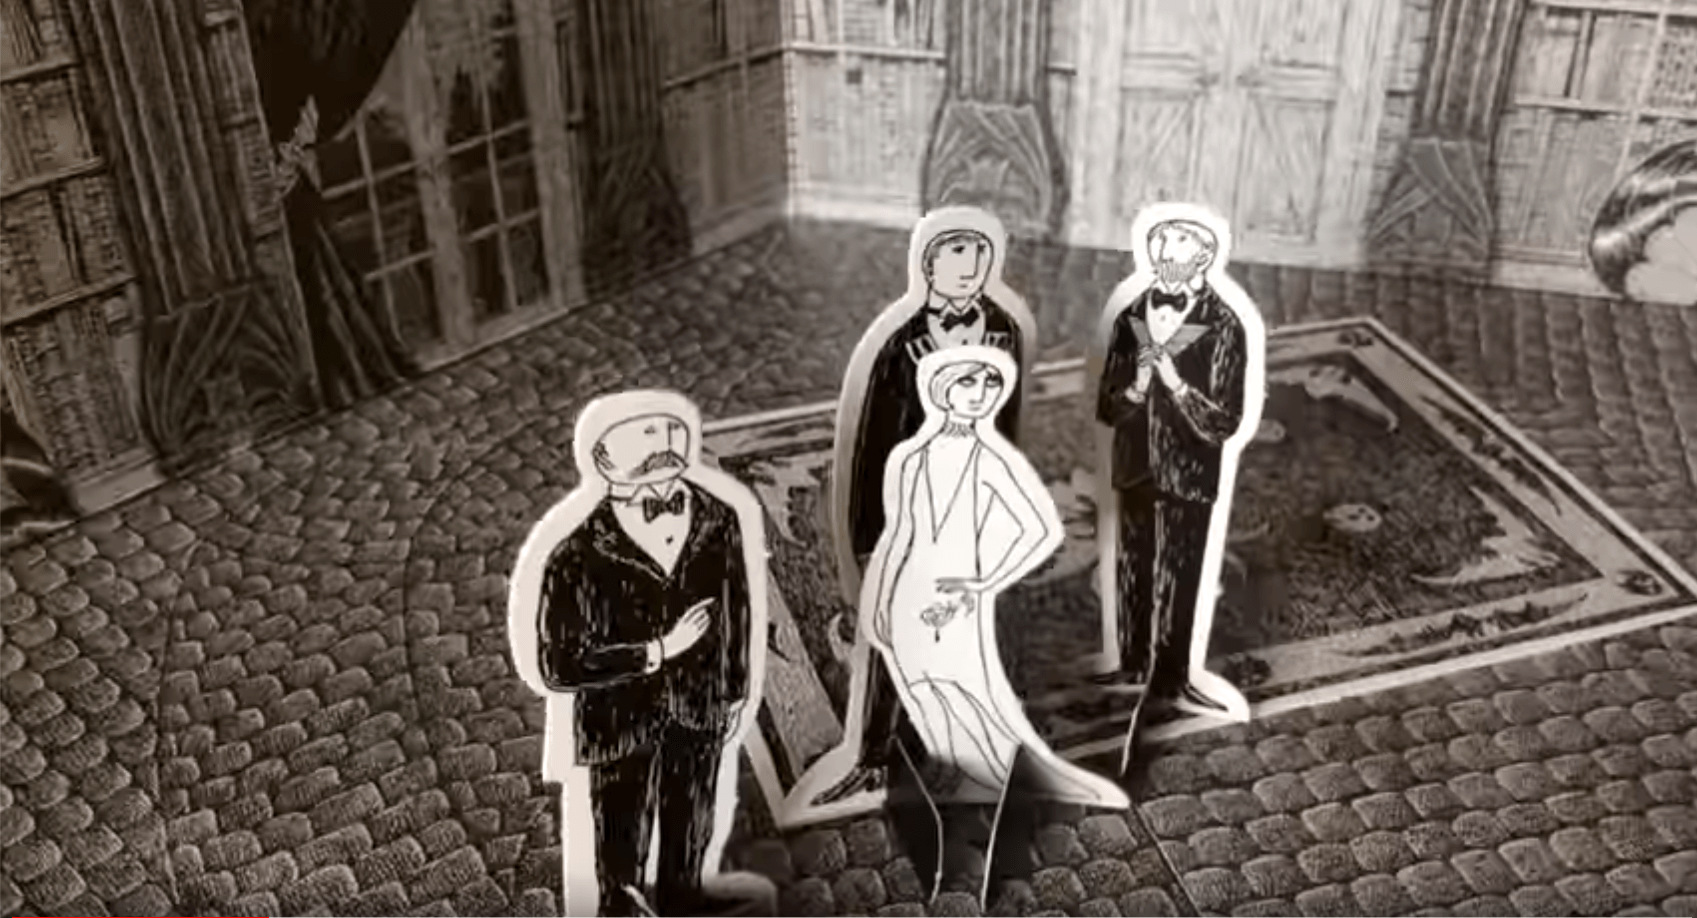 Edward Gorey's sets for the 1977 Broadway production of Dracula